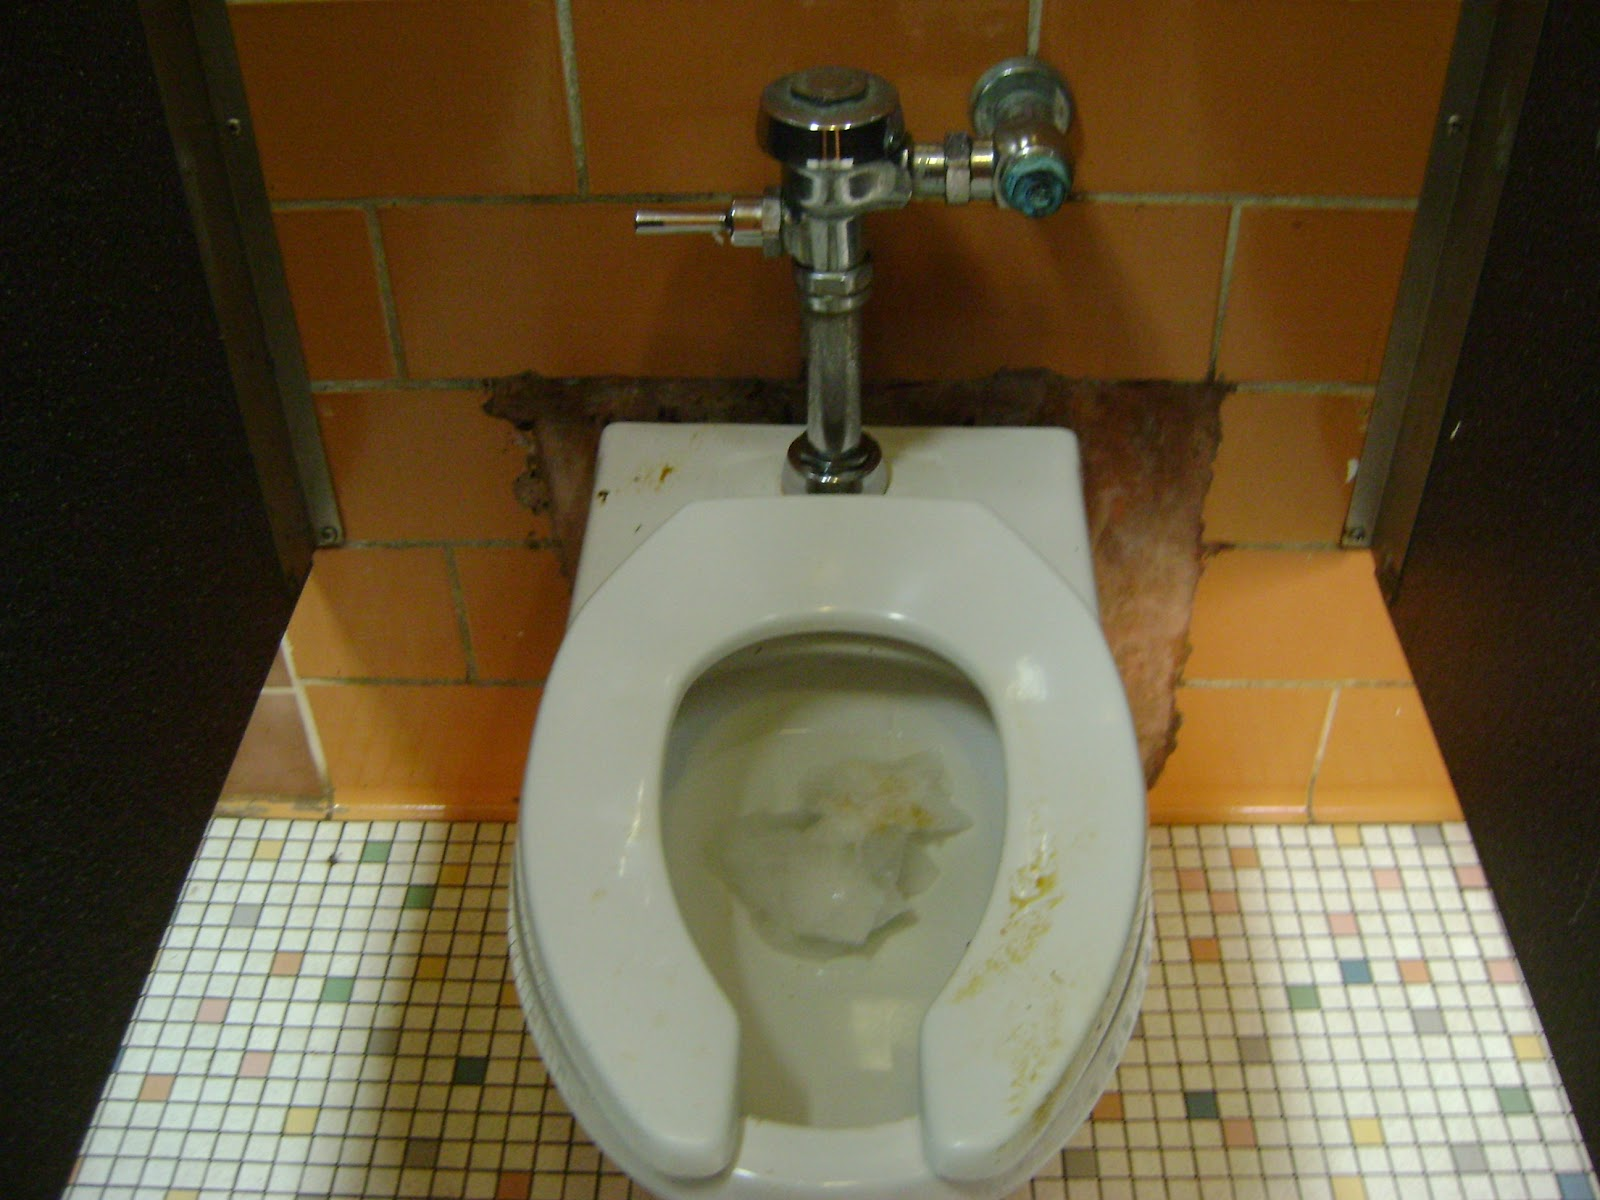 Watery diarrhea in toilet